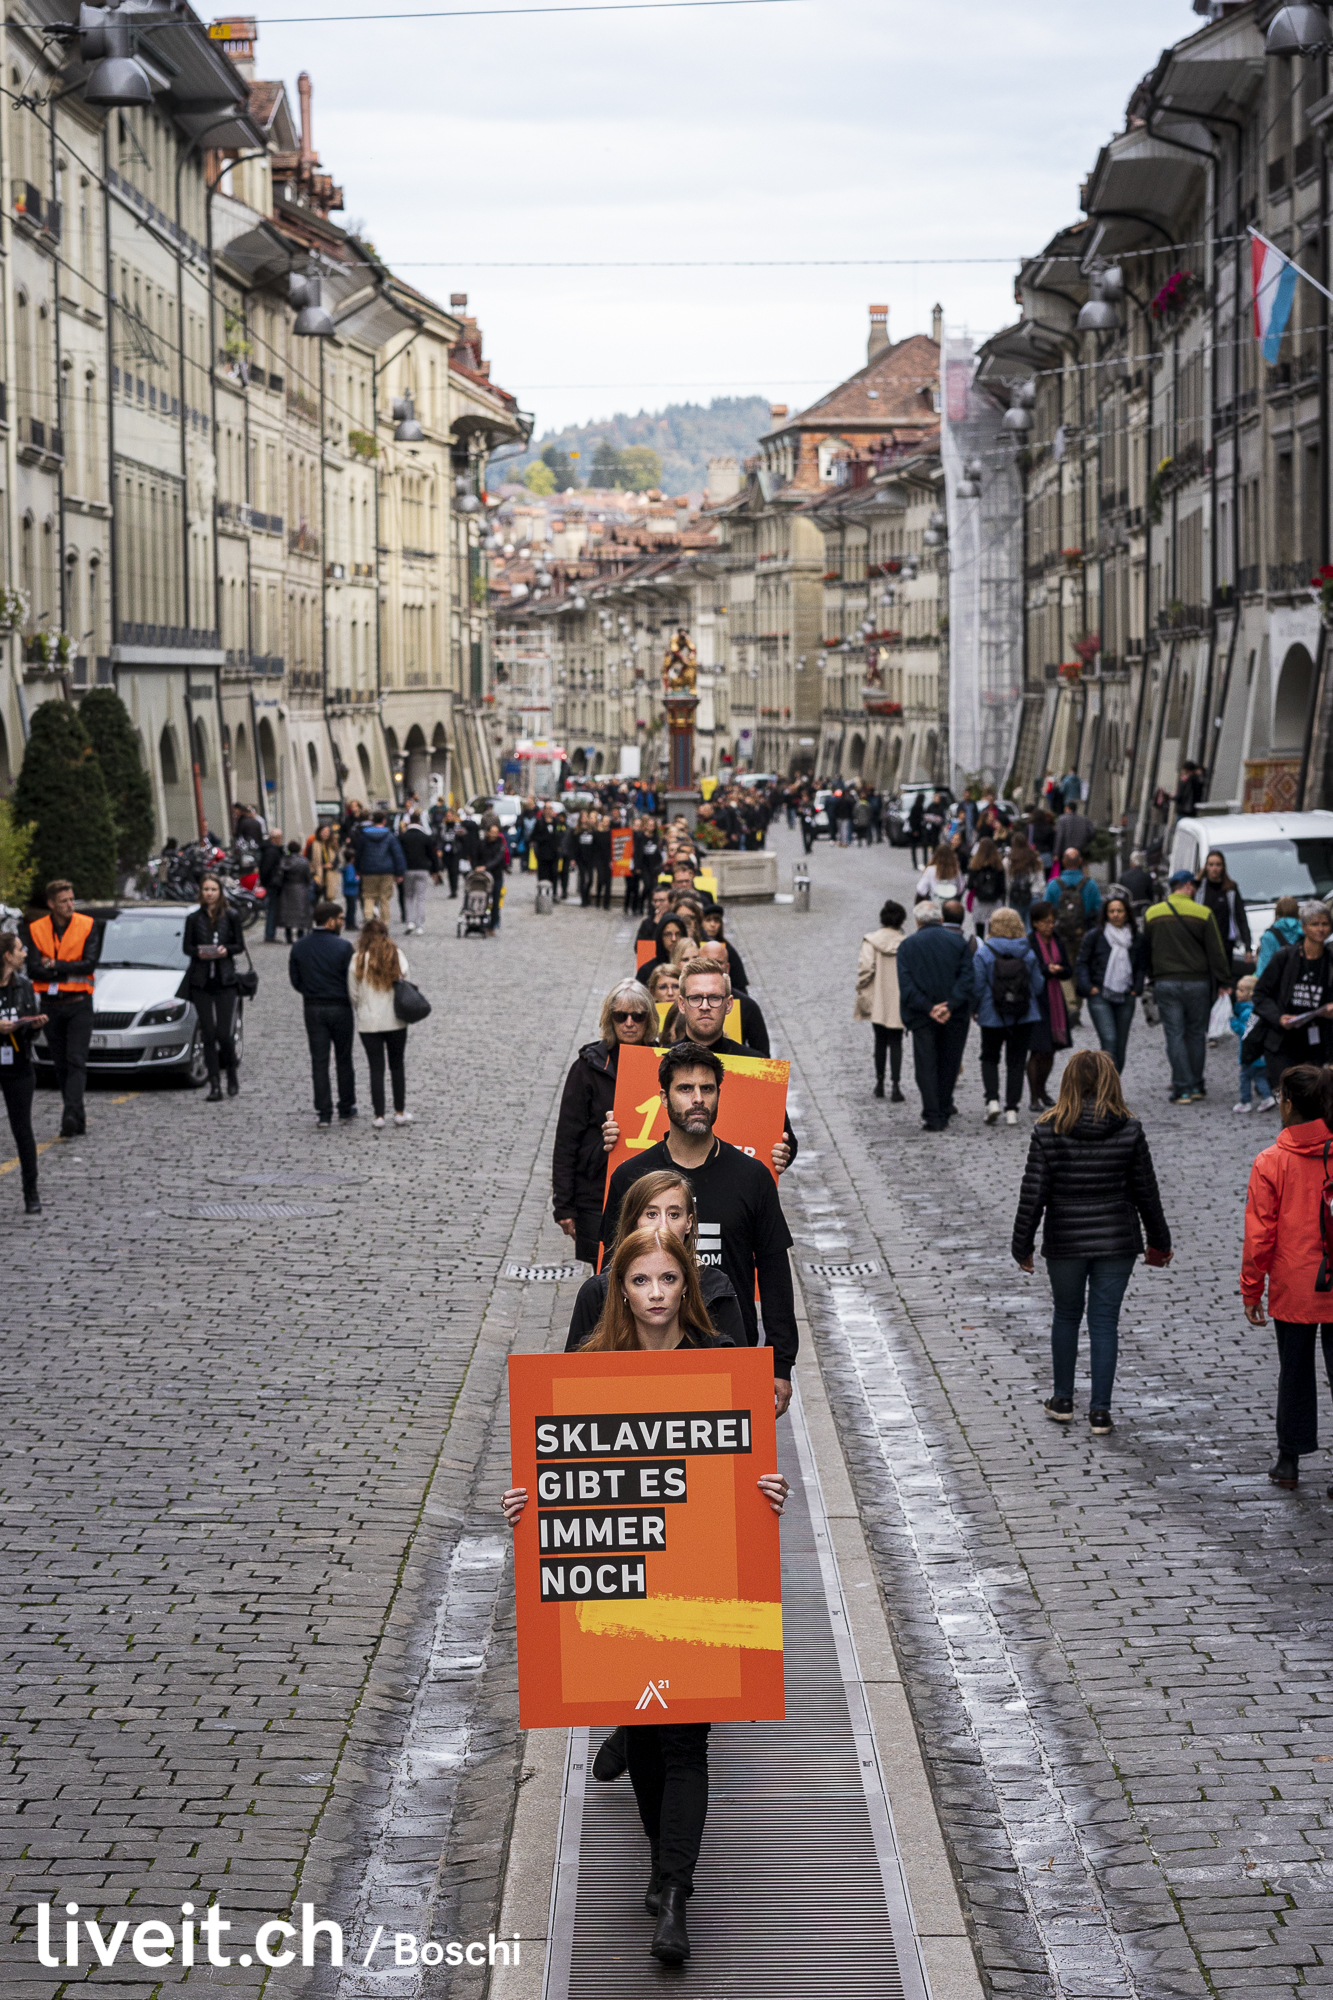 Demonstration gegen Sklaverei und Menschenhandel in Bern. Namentlich Walk for freedom (liveit.ch/boschi)